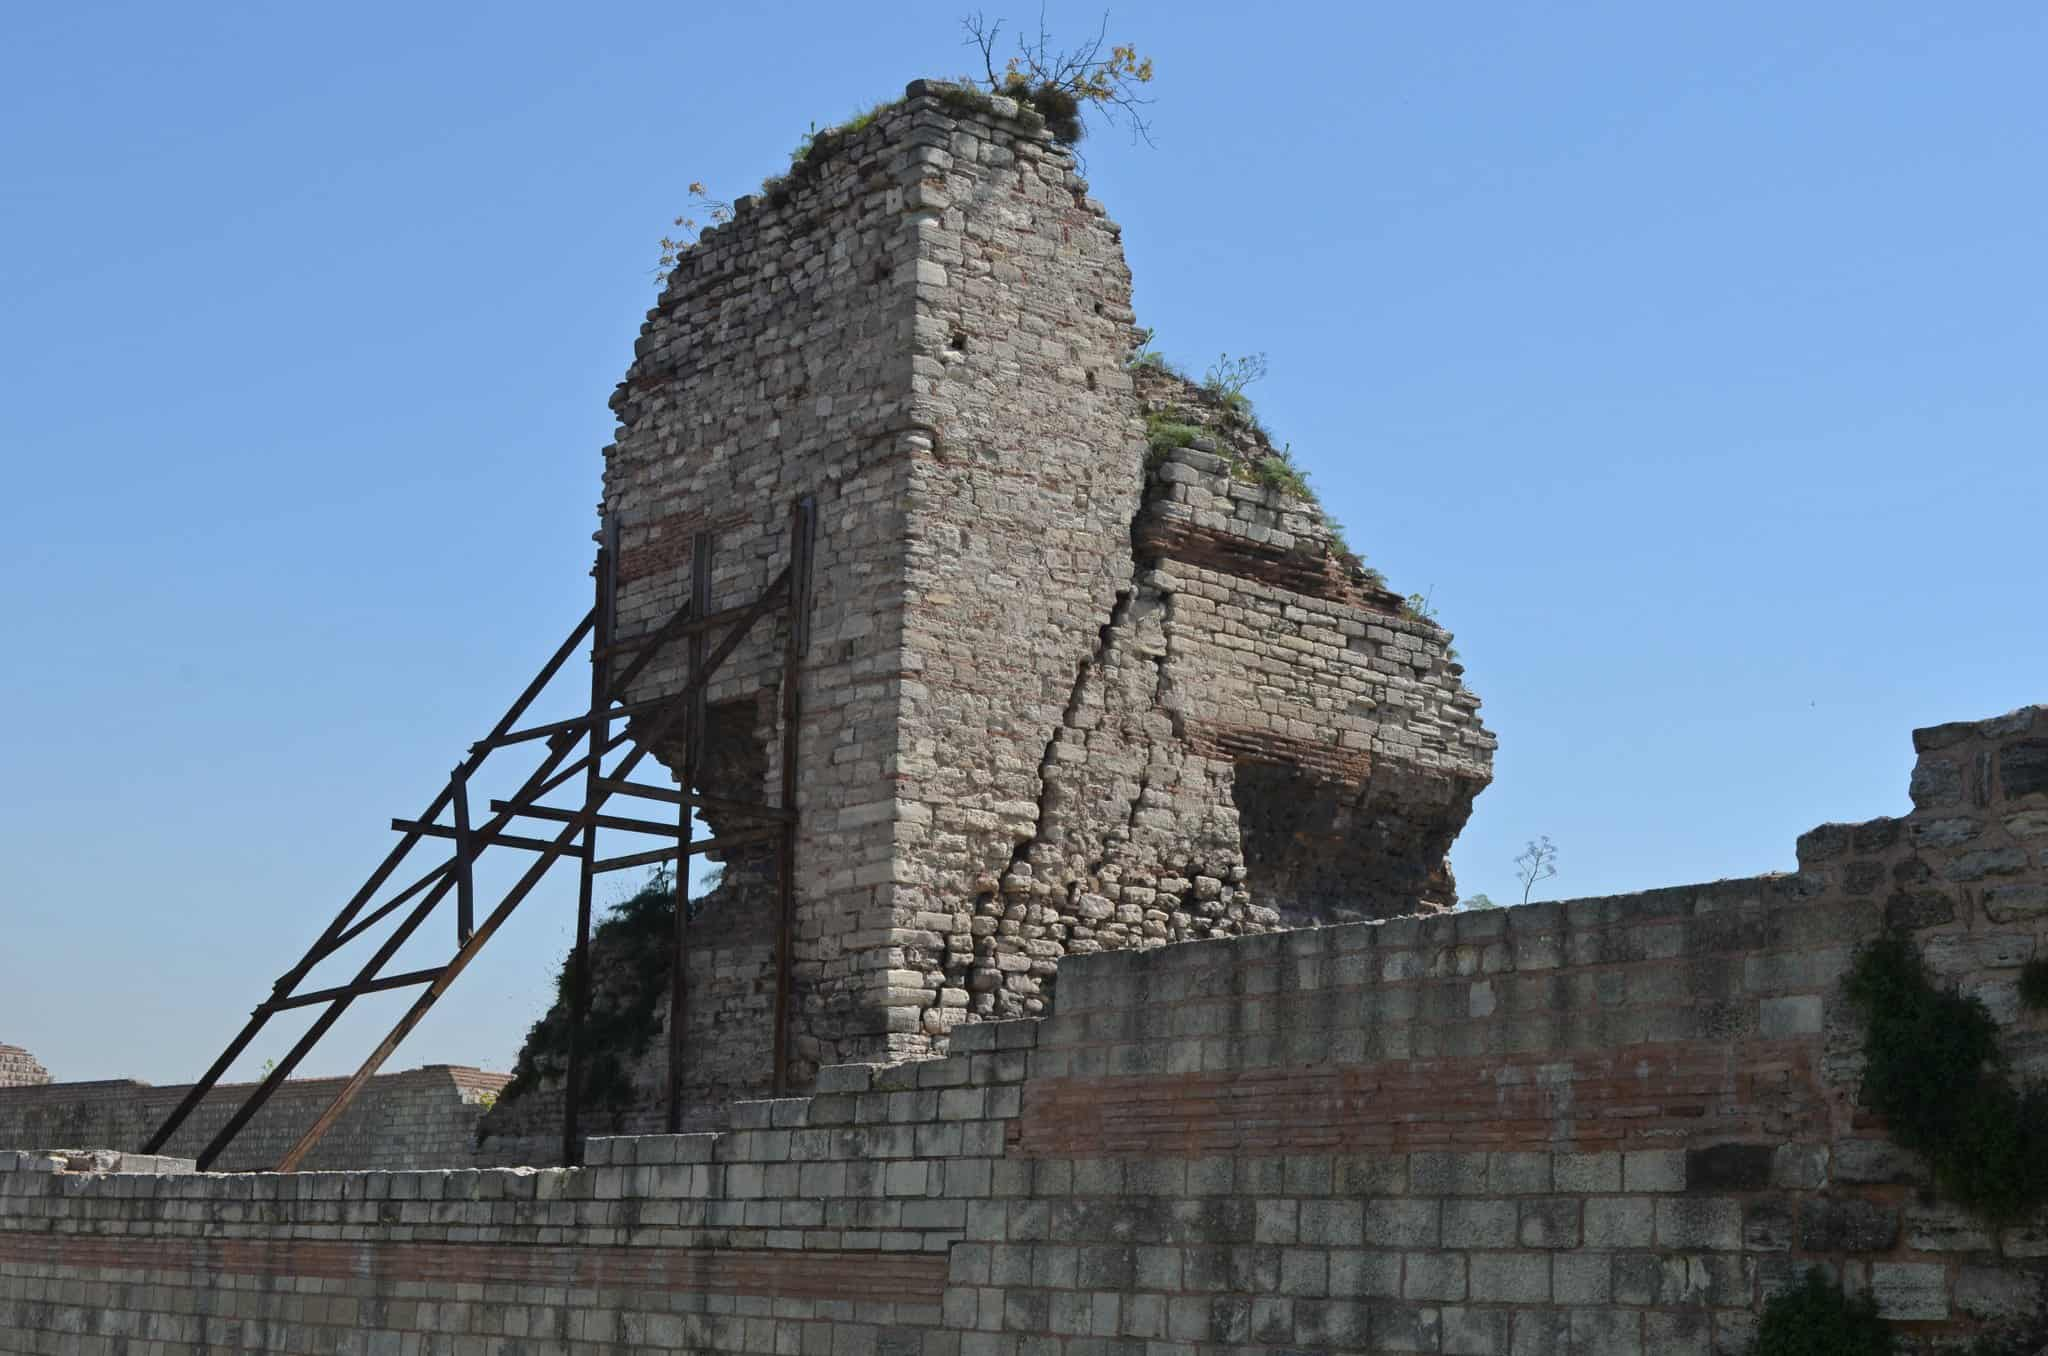 Byzantine Wall in Constantinople collapses as Turkey continues to let historical sites go into disrepair 6